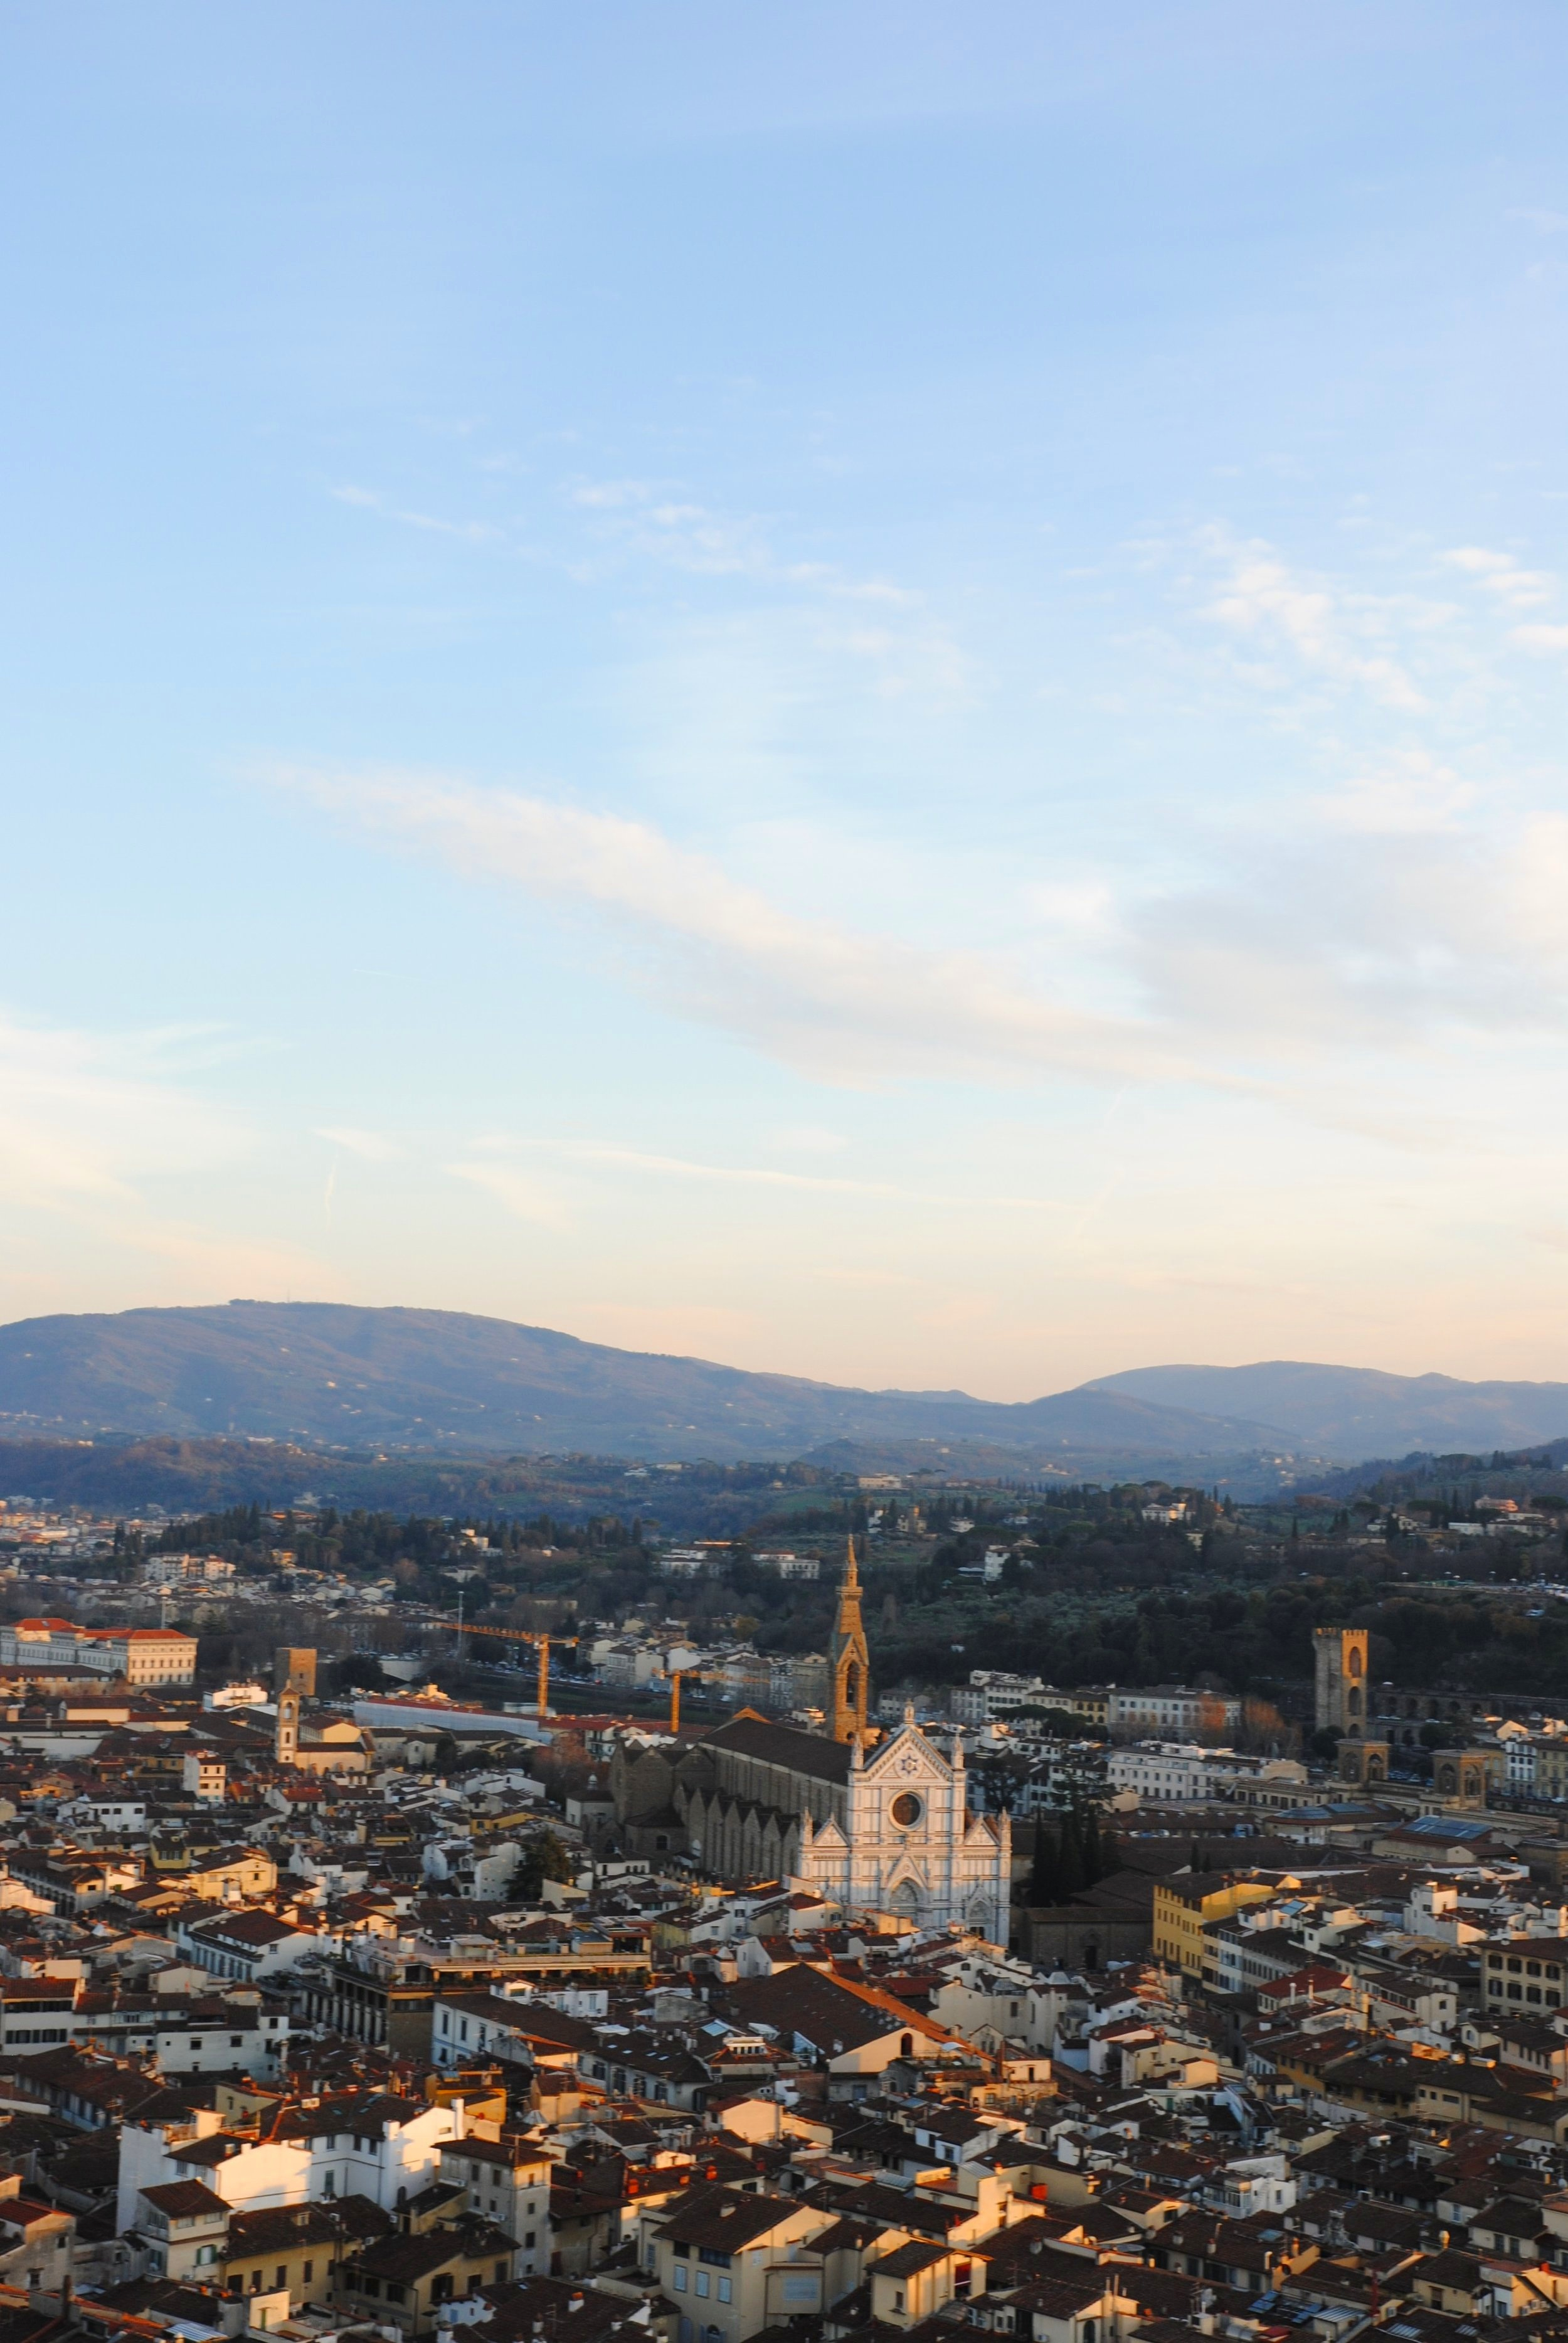 Rewarding view of the Church of Saint Croce, from the top of Duomo